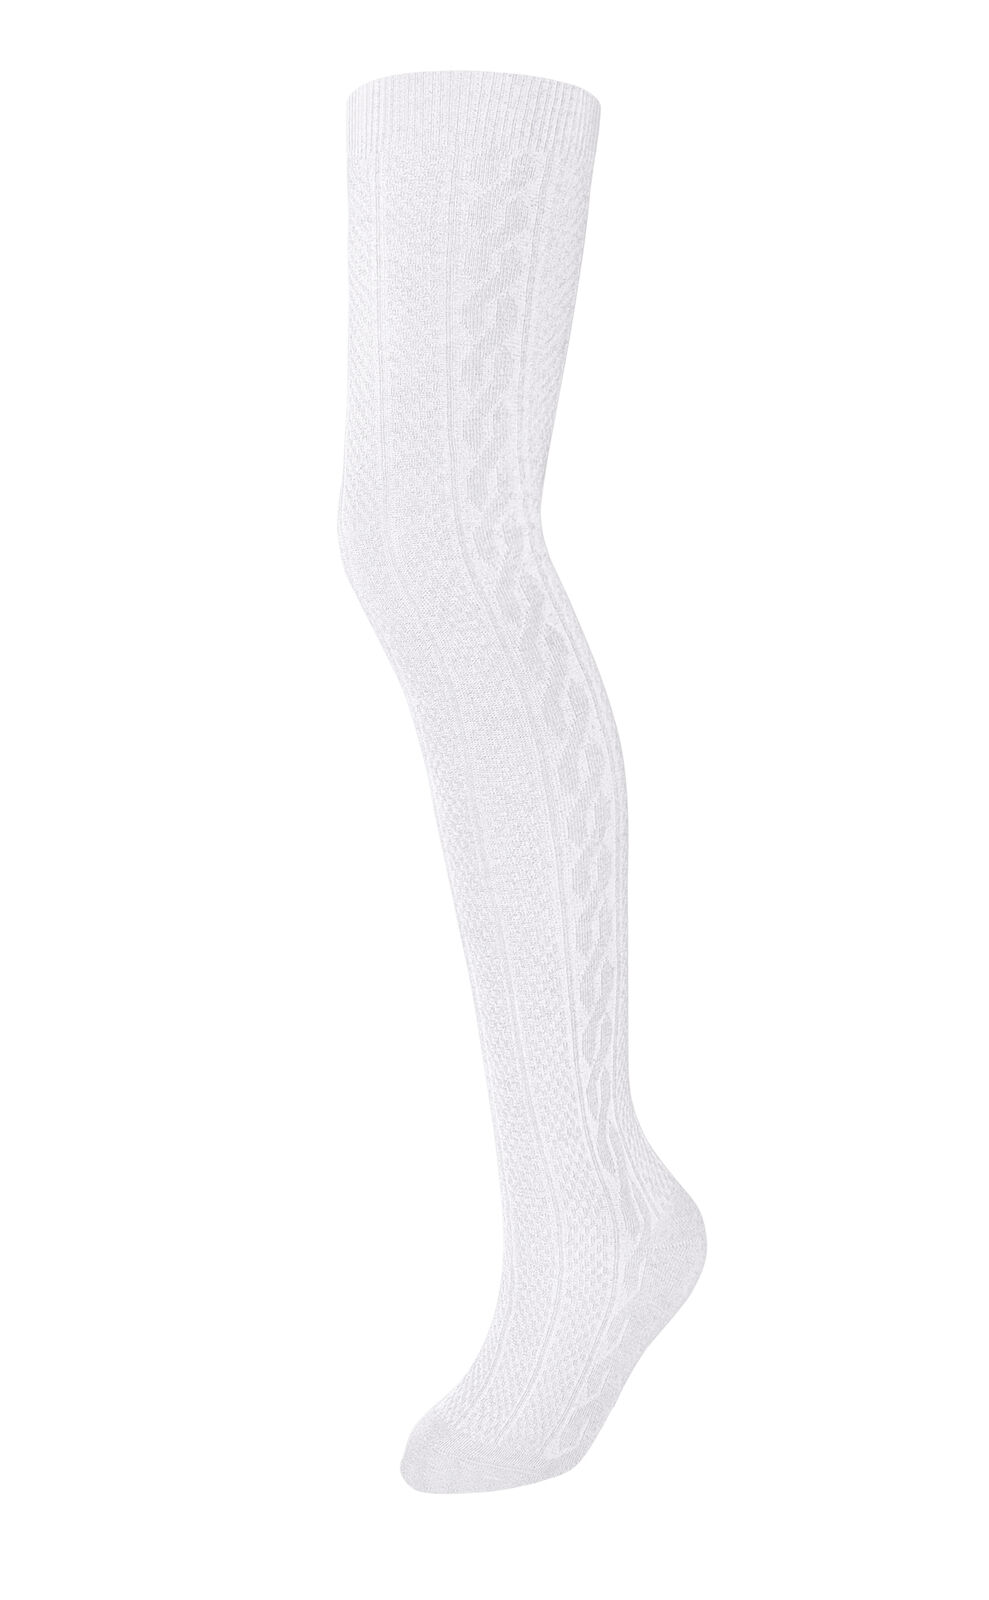 Girls Tights for Children & Teens, Cable Knit Warm Tights,Pe